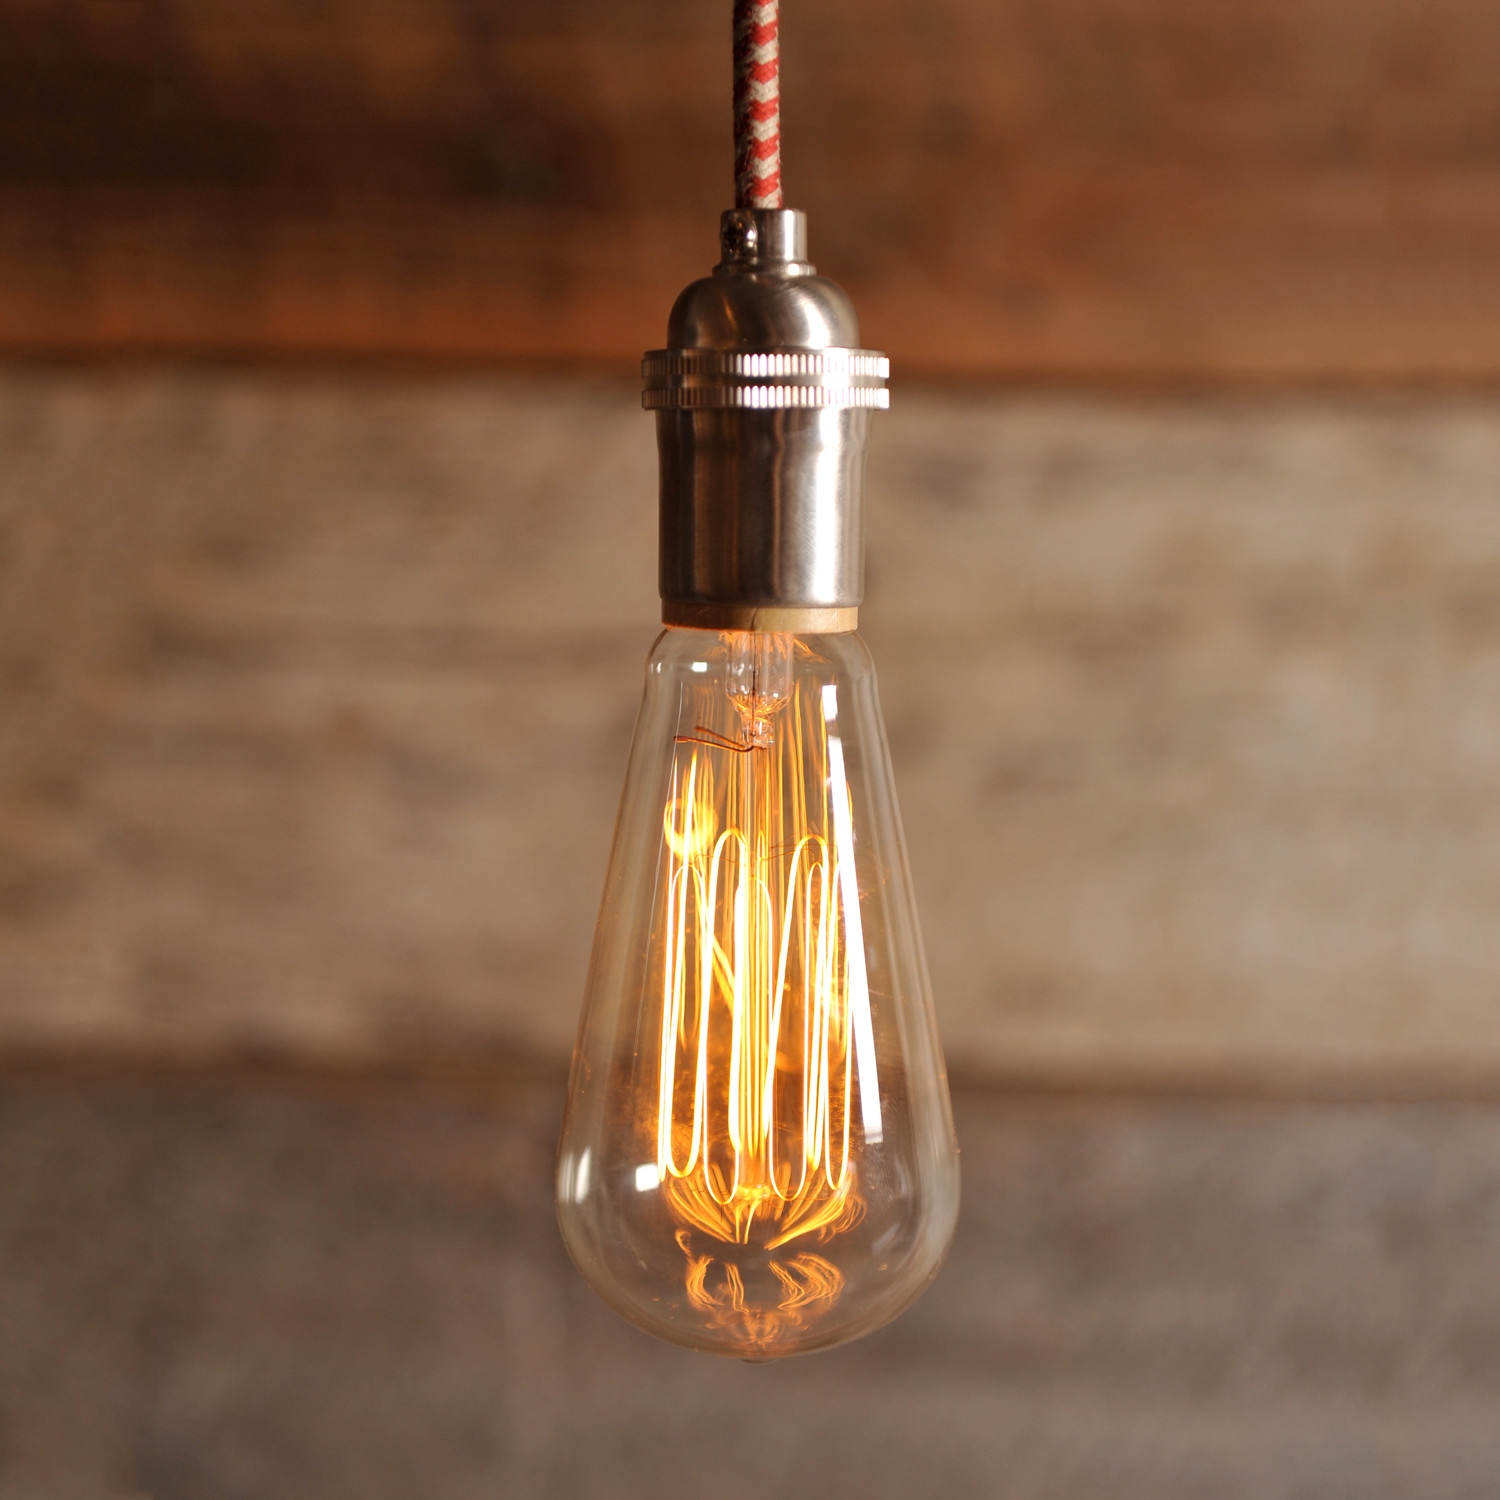 Modern Vintage Lights Vintage Style Edison Light Bulb Southern Lights Electric